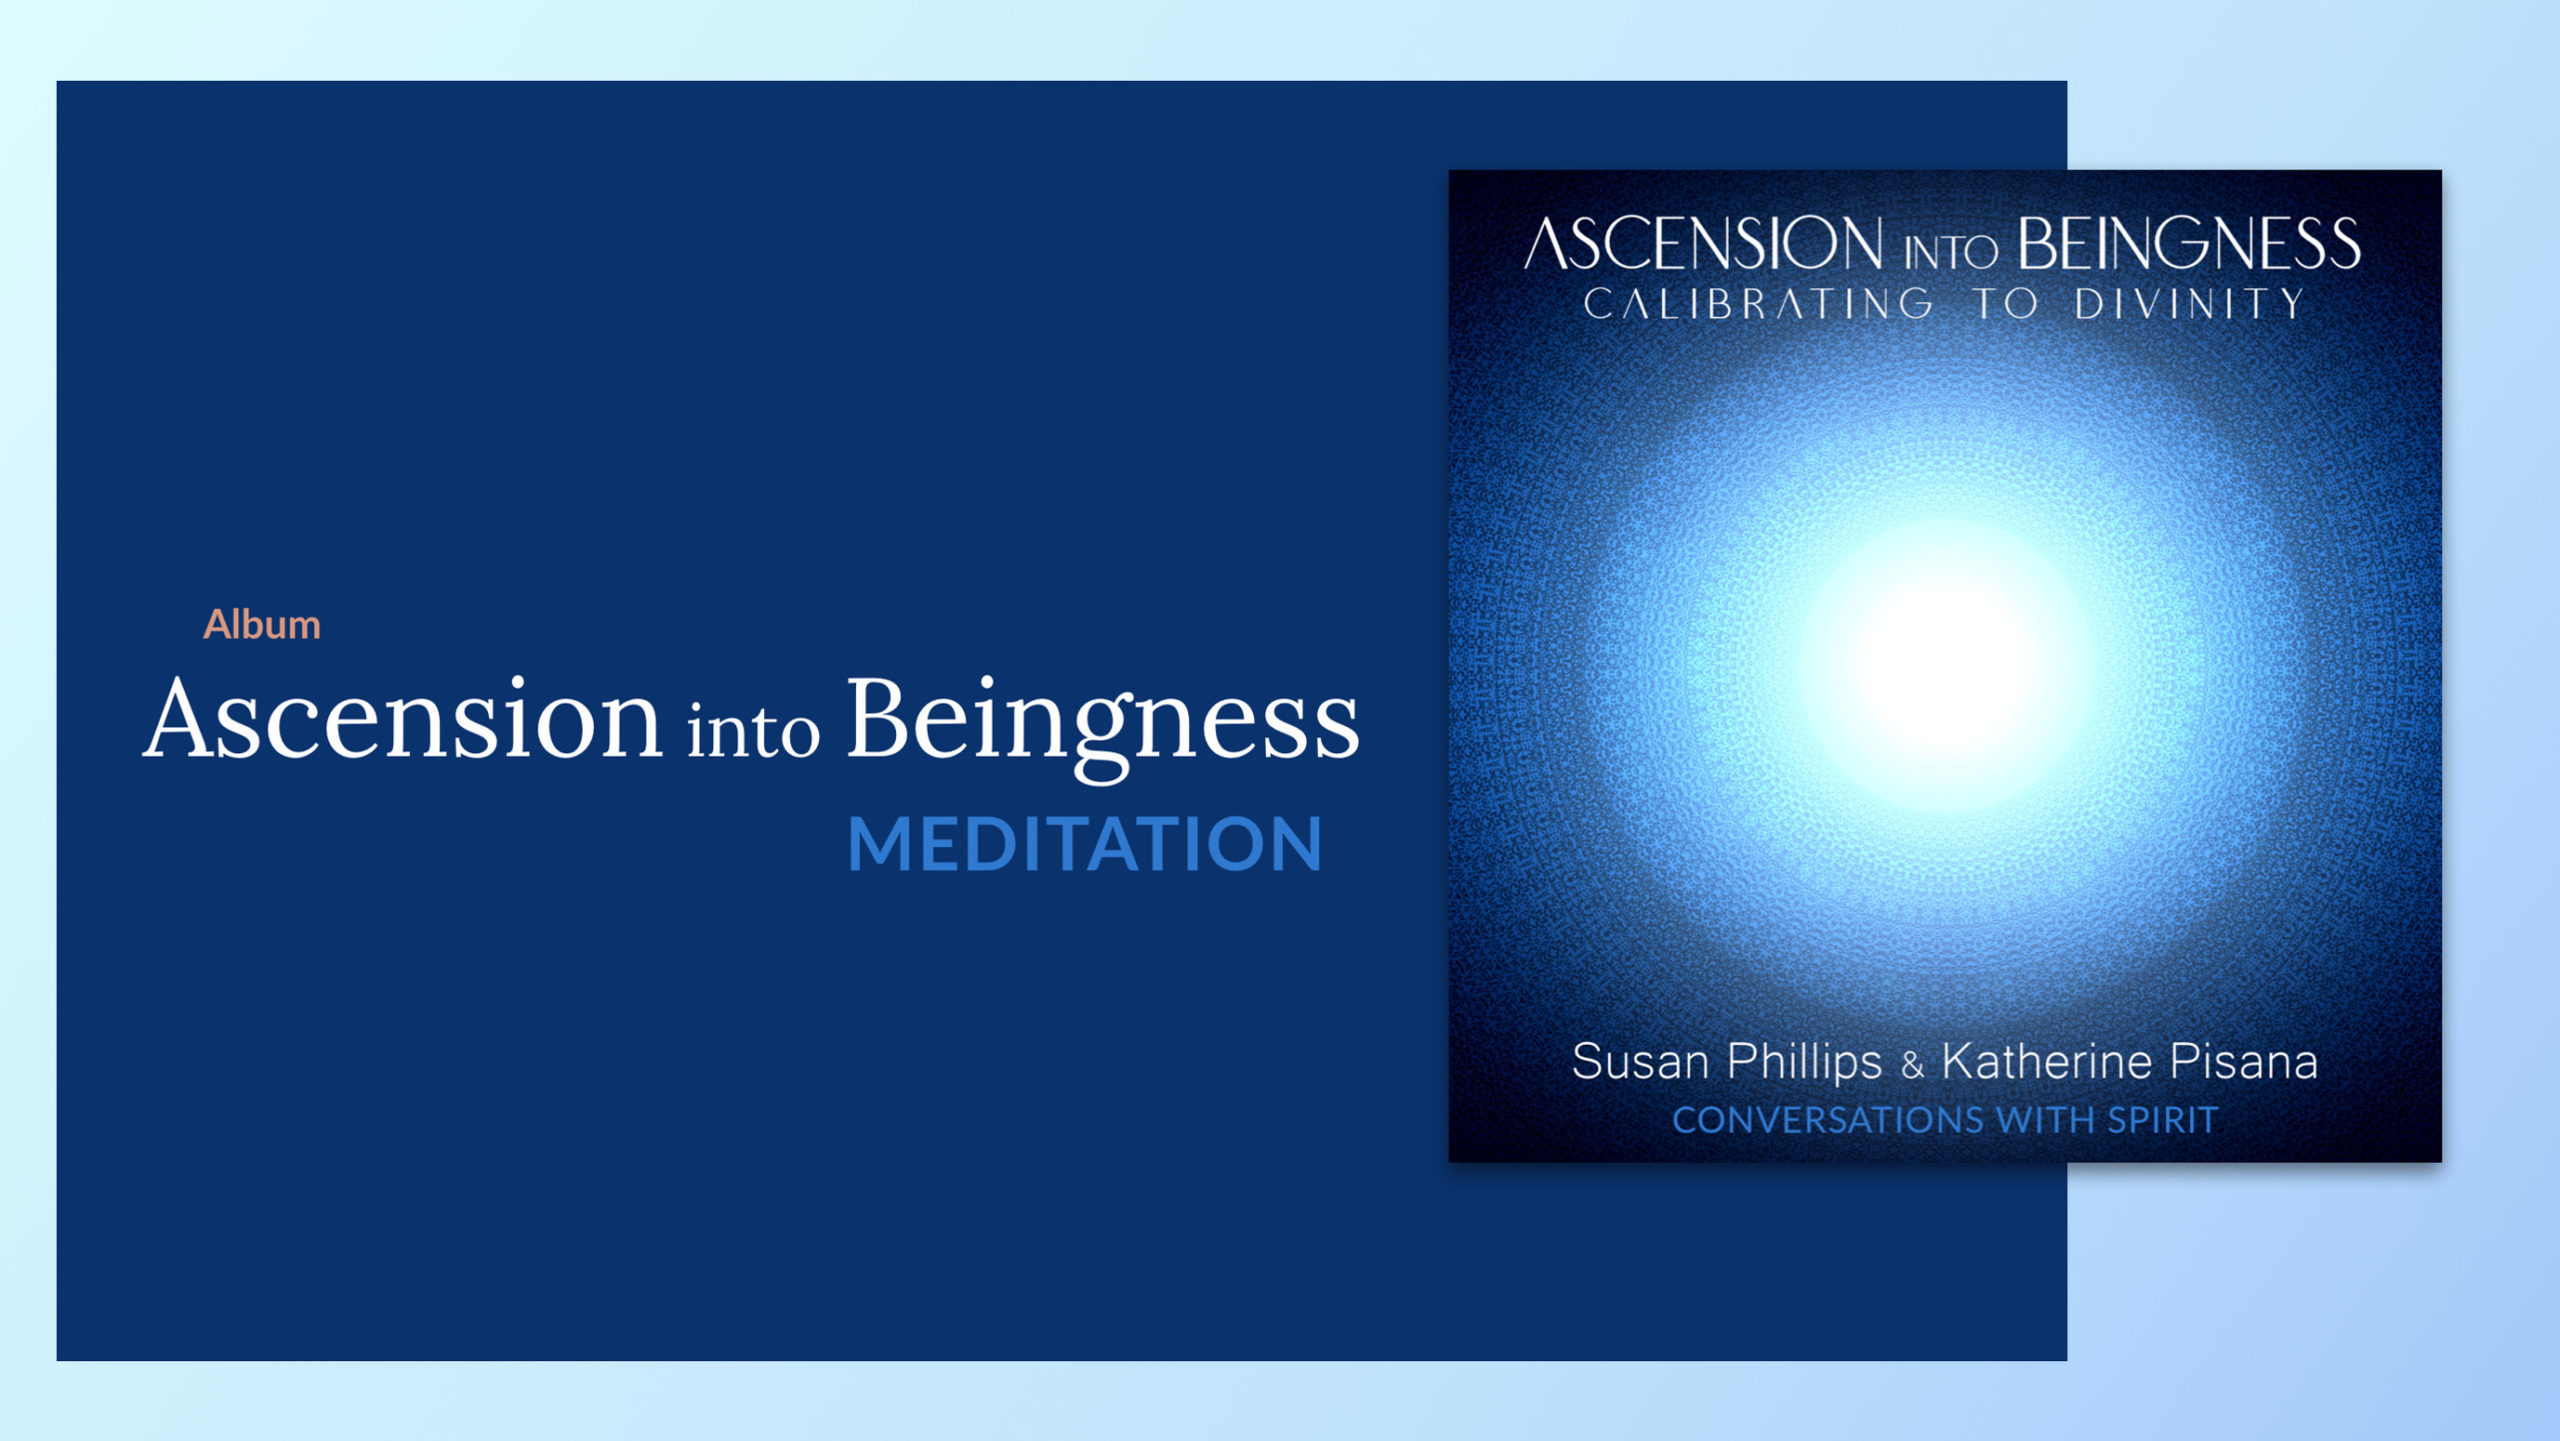 Ascension into Beingness: a meditation